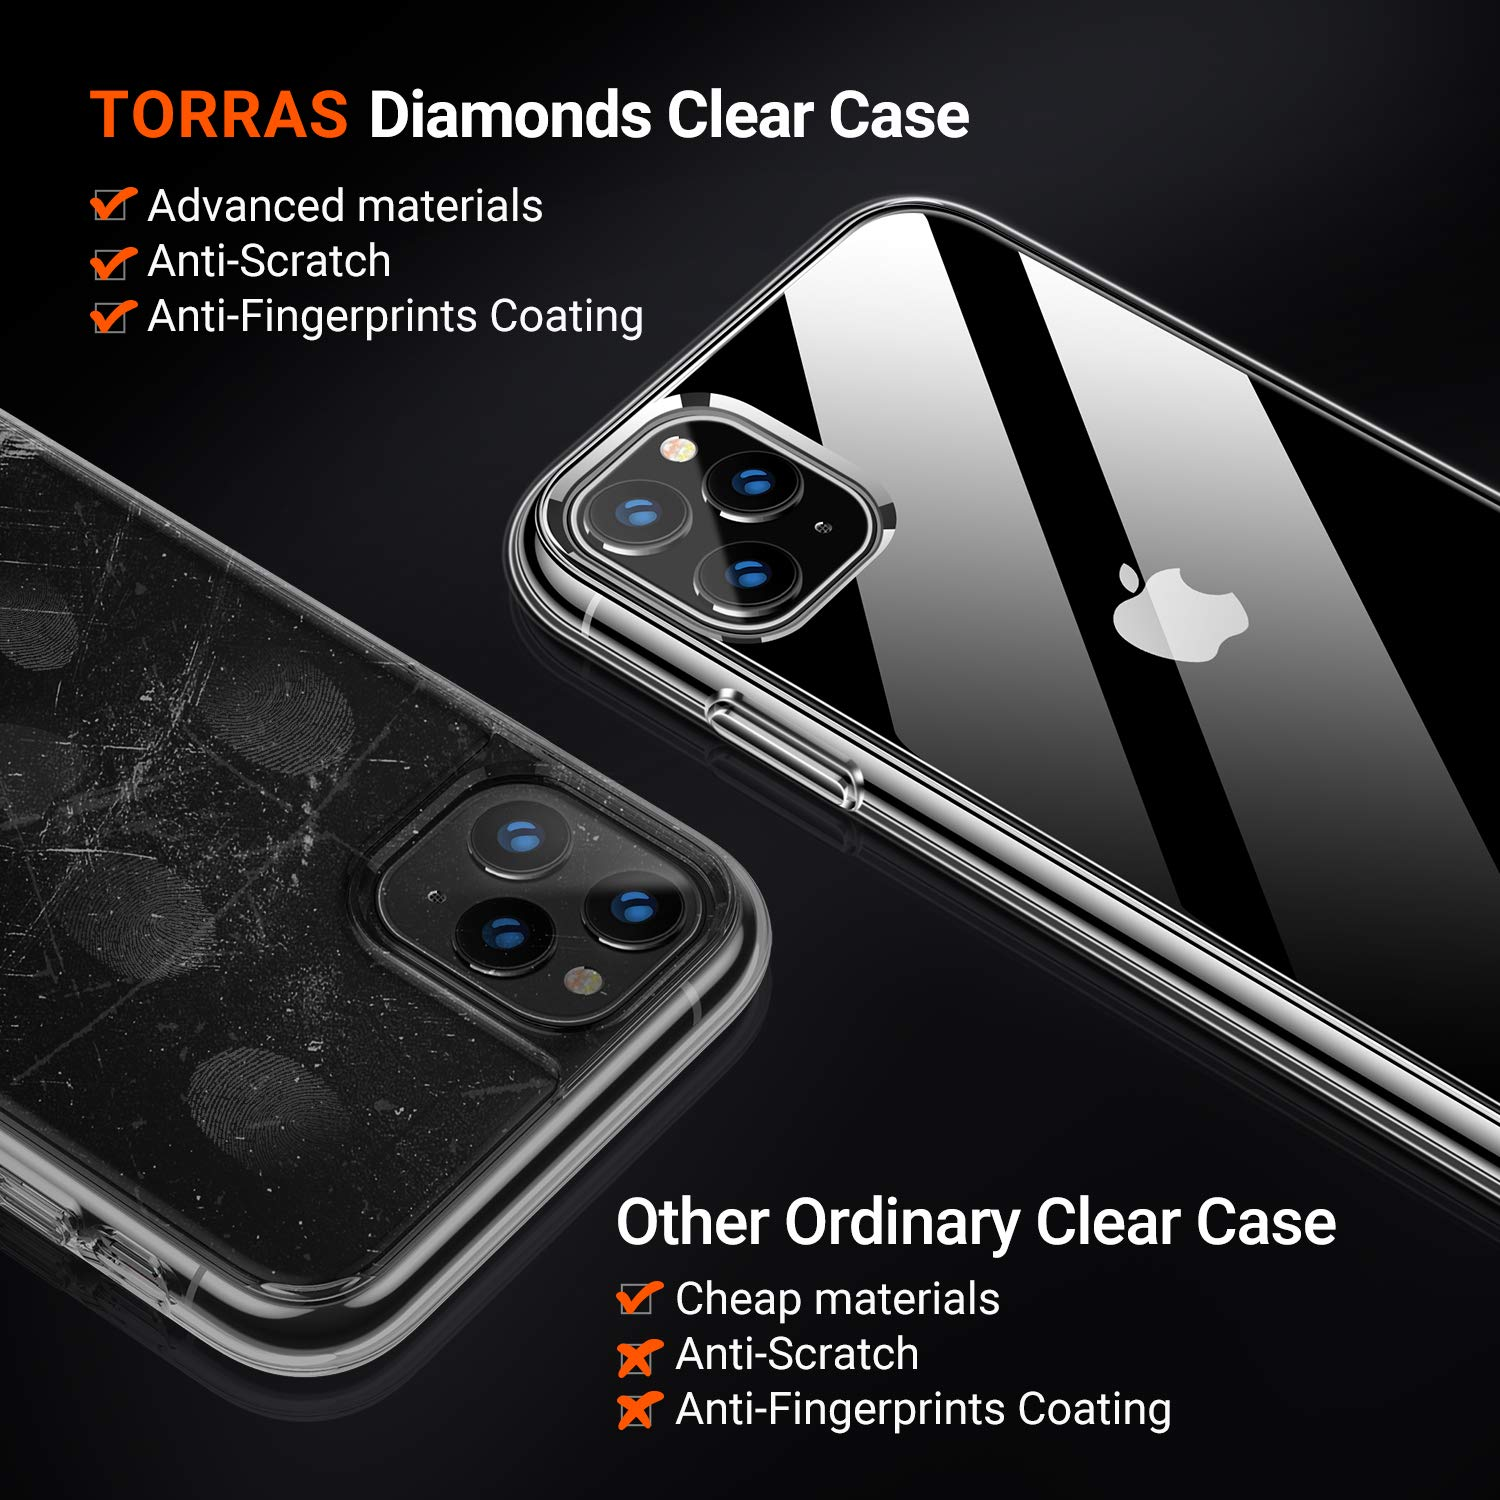 Anti-Yellowing Matte Black TORRAS Diamonds Clear iPhone 11 Pro Max Case, Slim Fit Shockproof Hard Plastic Back /& Soft Silicone Bumper Phone Case Designed for iPhone 11 Pro Max Fully Protective